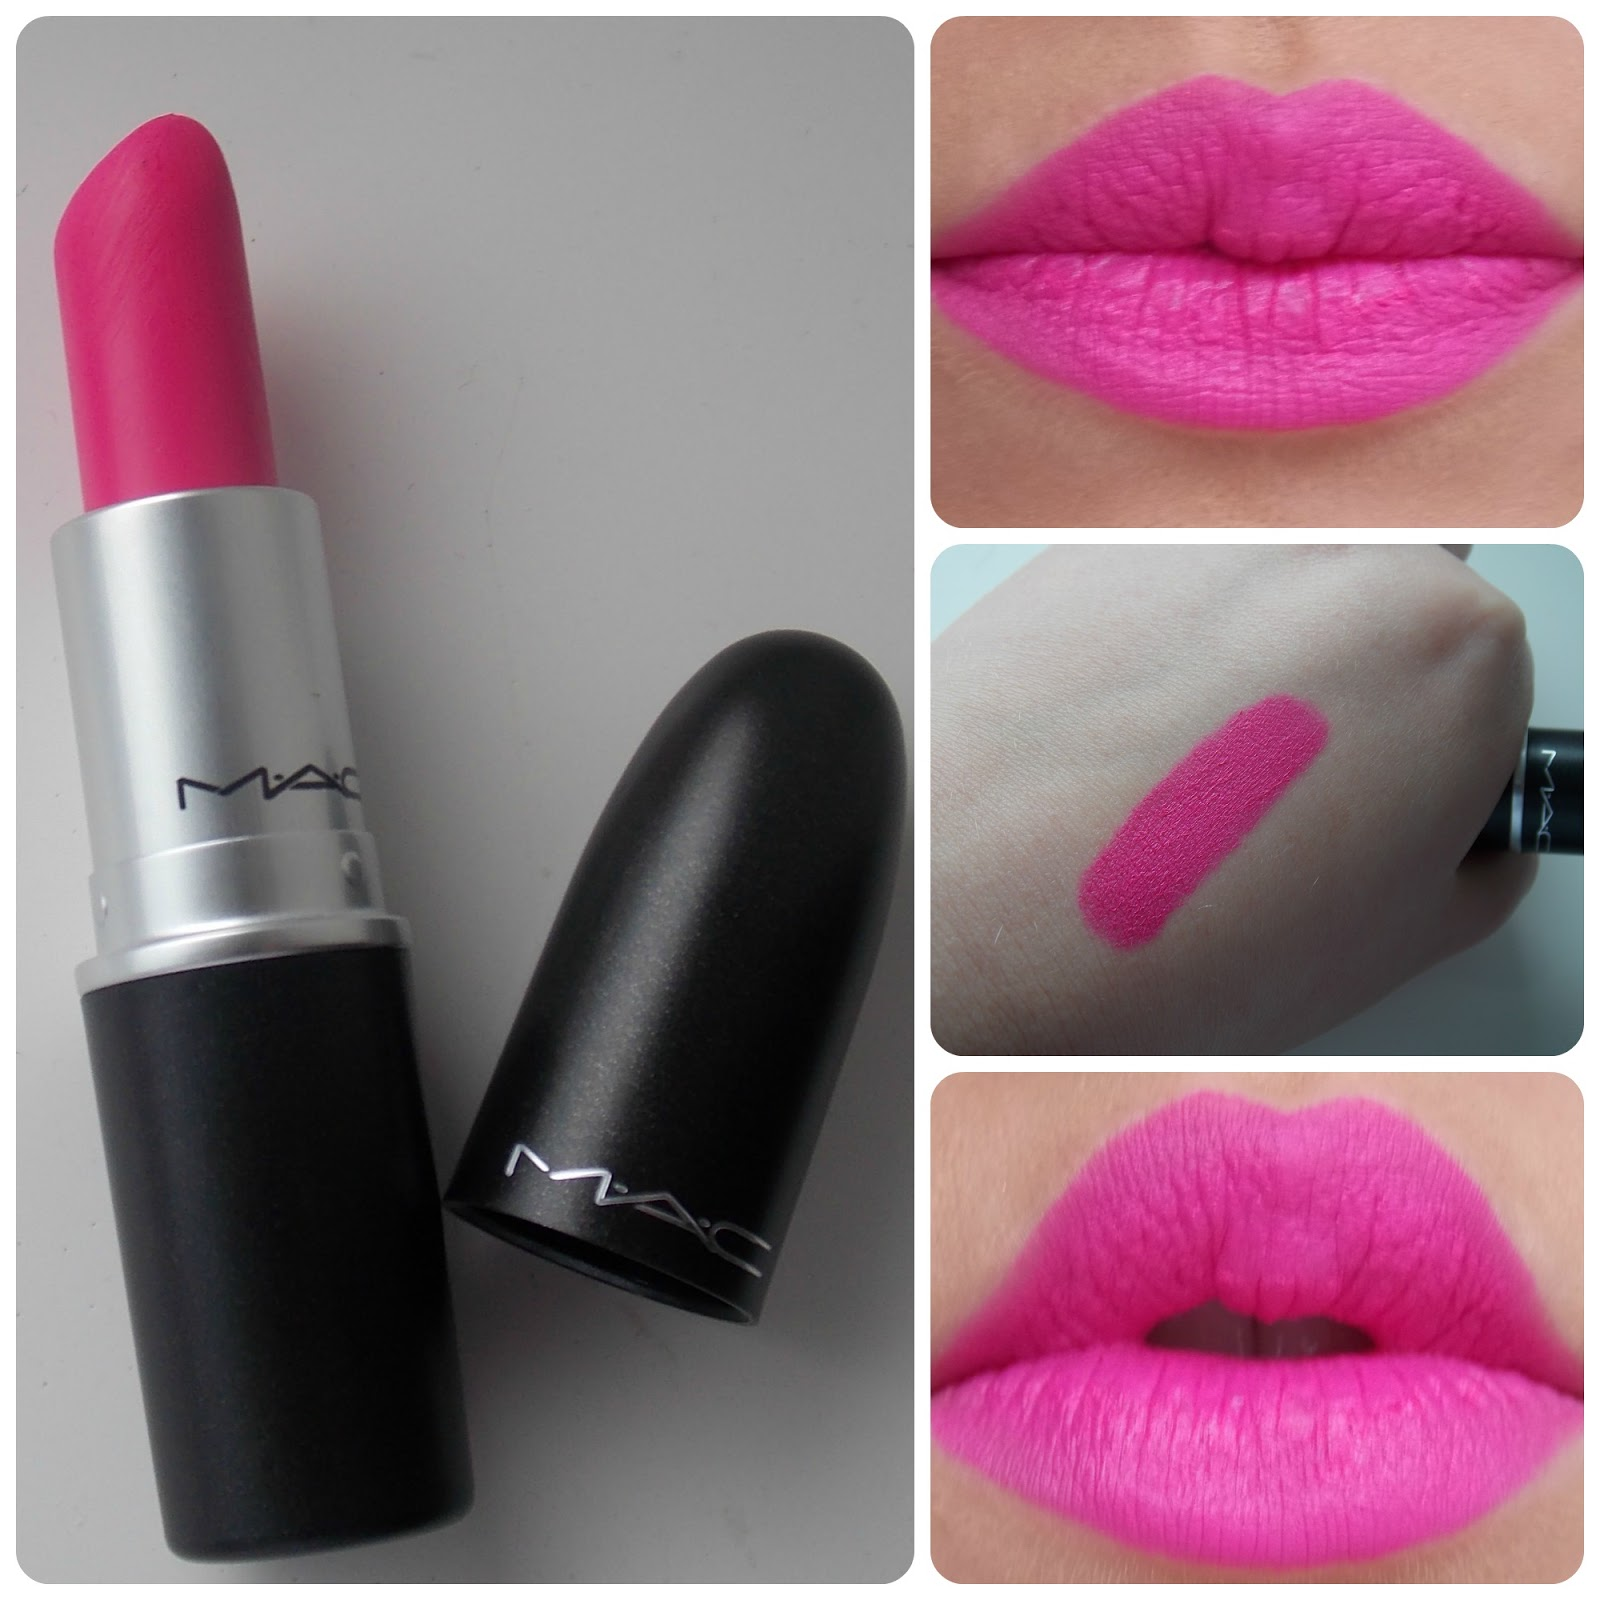 mac | Q8 Mango People